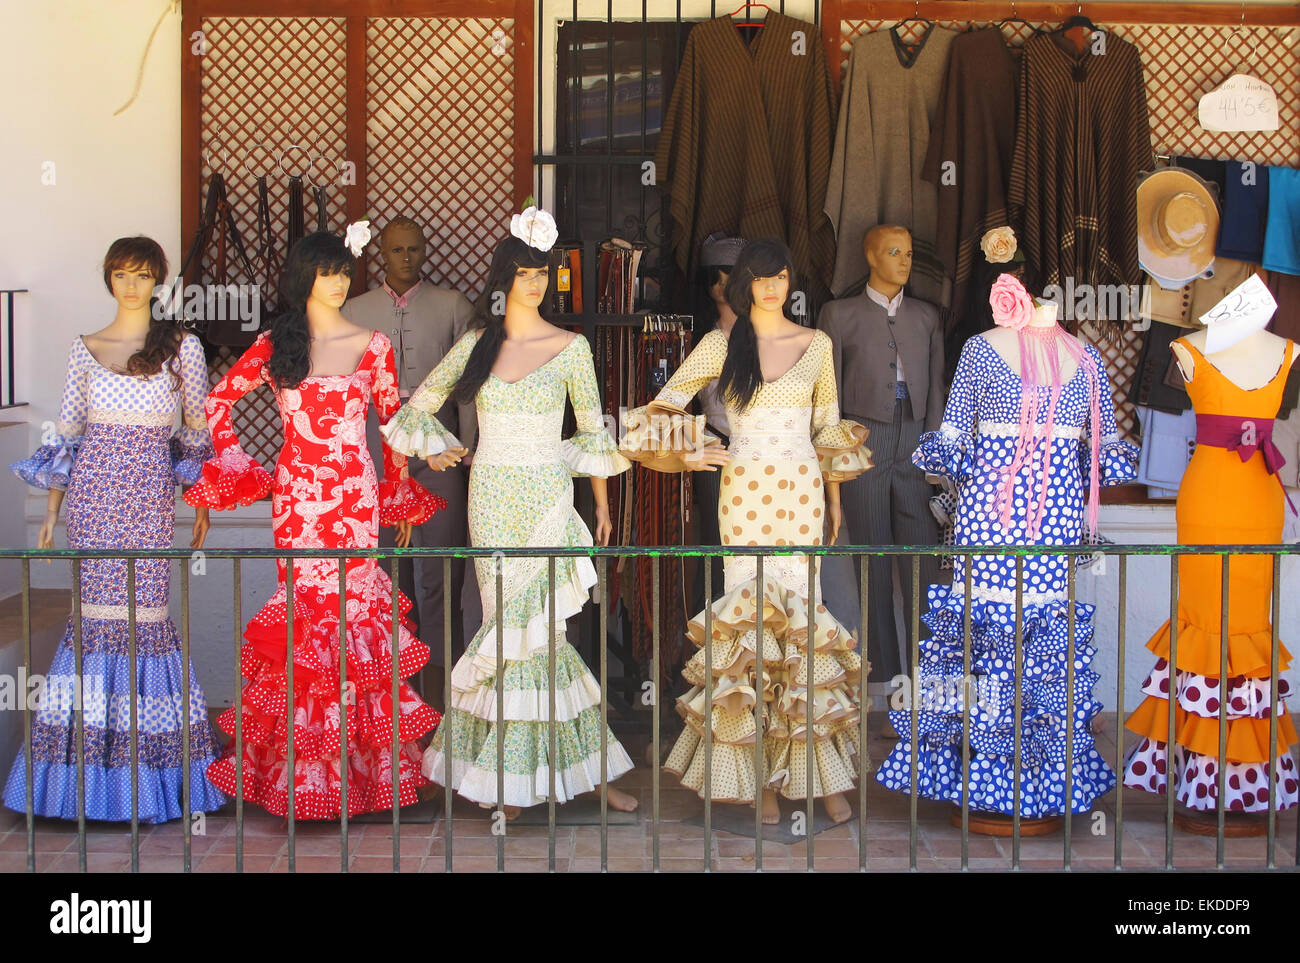 Flamenco shop in El Rocio, Huelva. Andalusia, Spain. - Stock Image